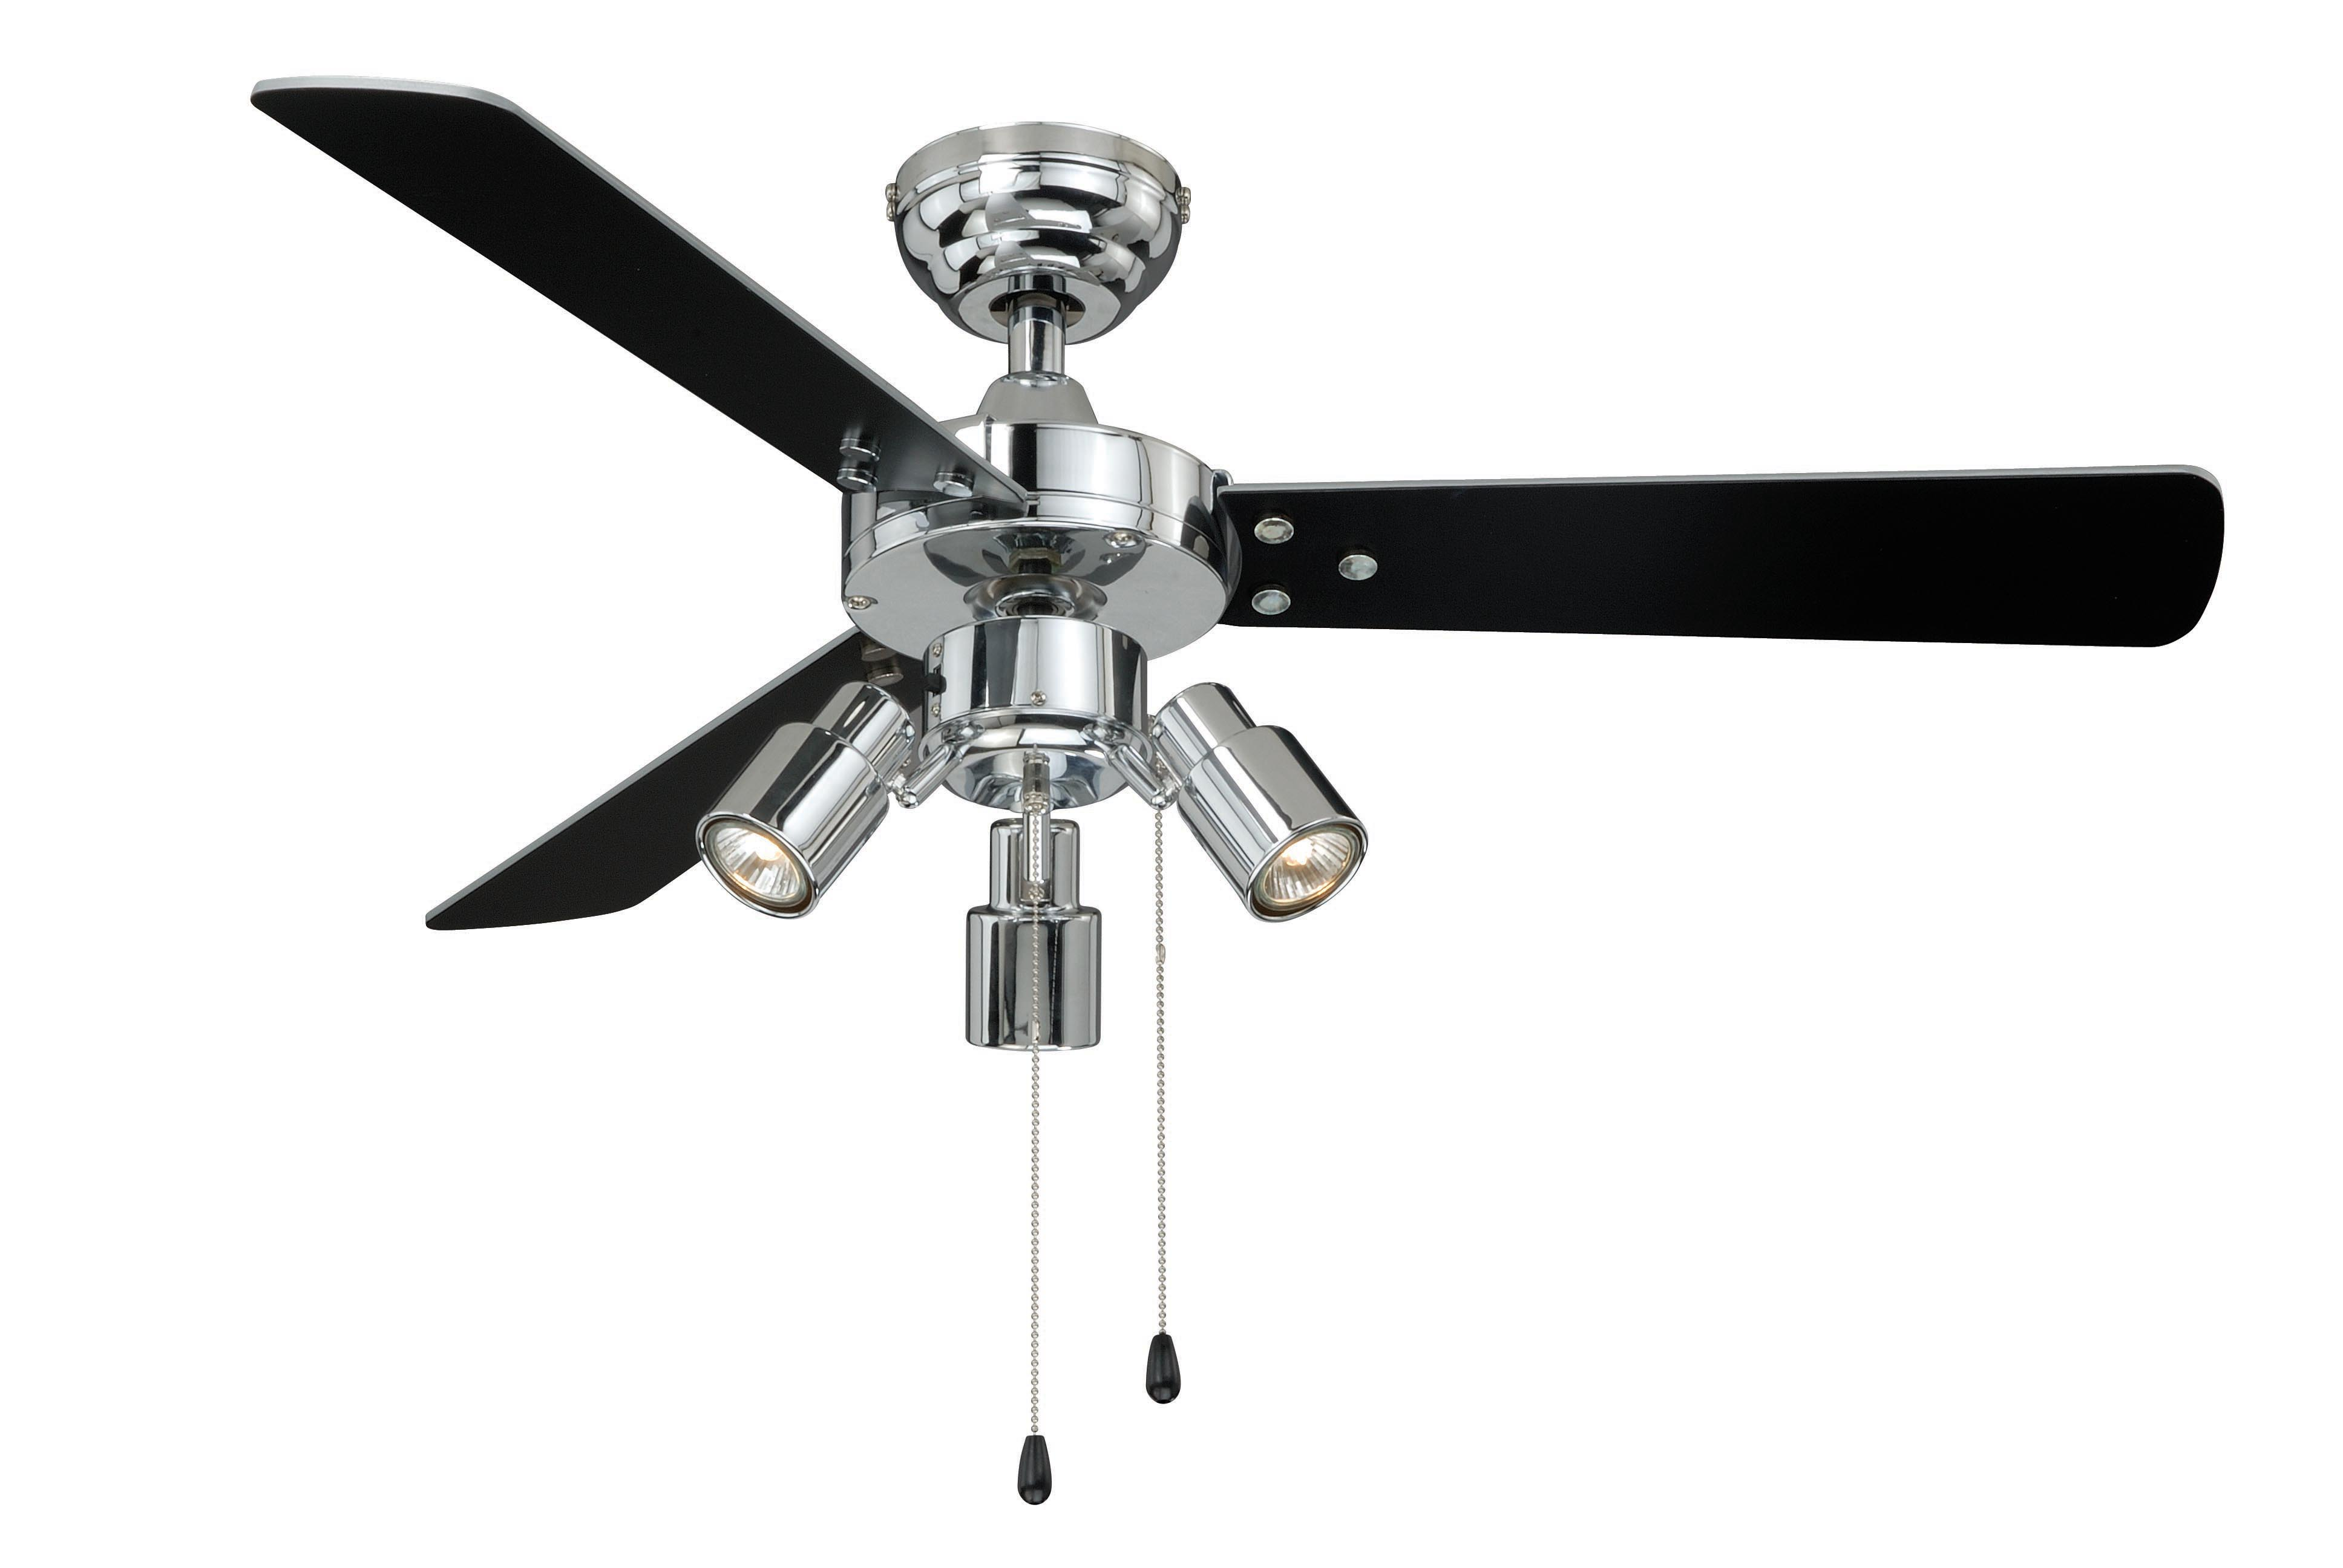 Chrome Ceiling Fans Without Lights Ceiling Fan Cyrus Chrome Without Lights 107cm 42